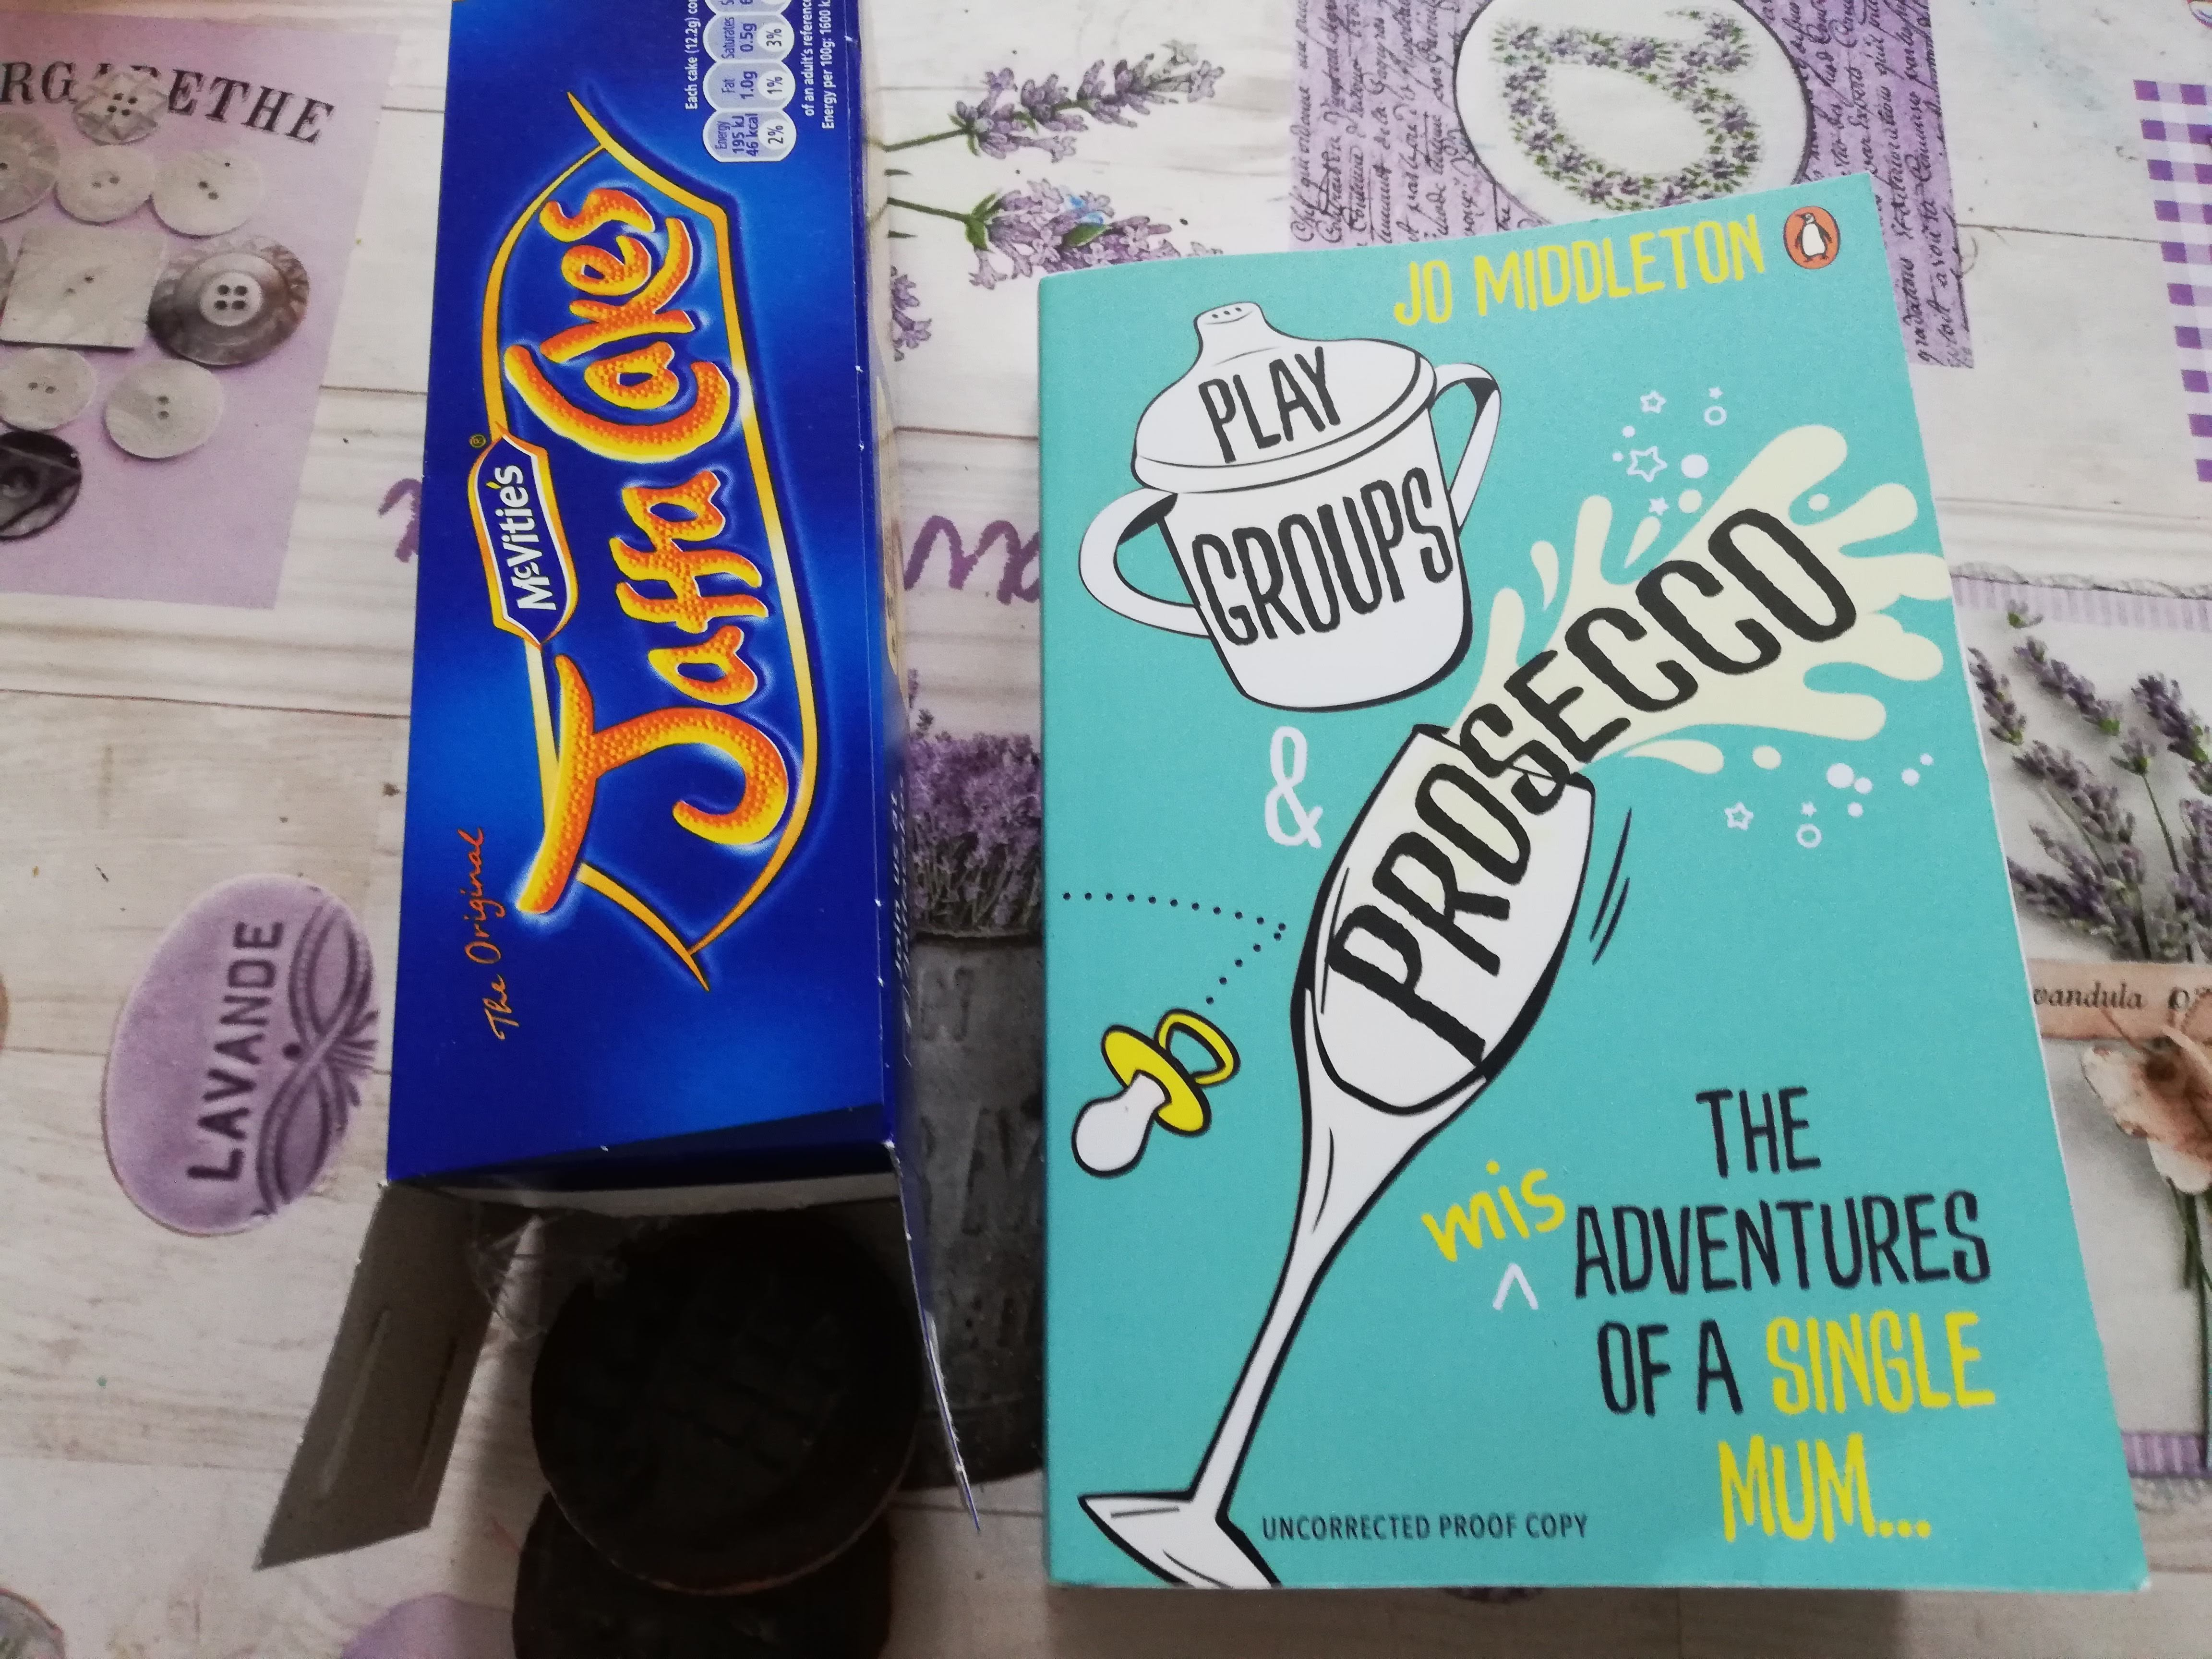 Book Review of Jo Middleton's Fabulous New Book Playgroups & Prosecco